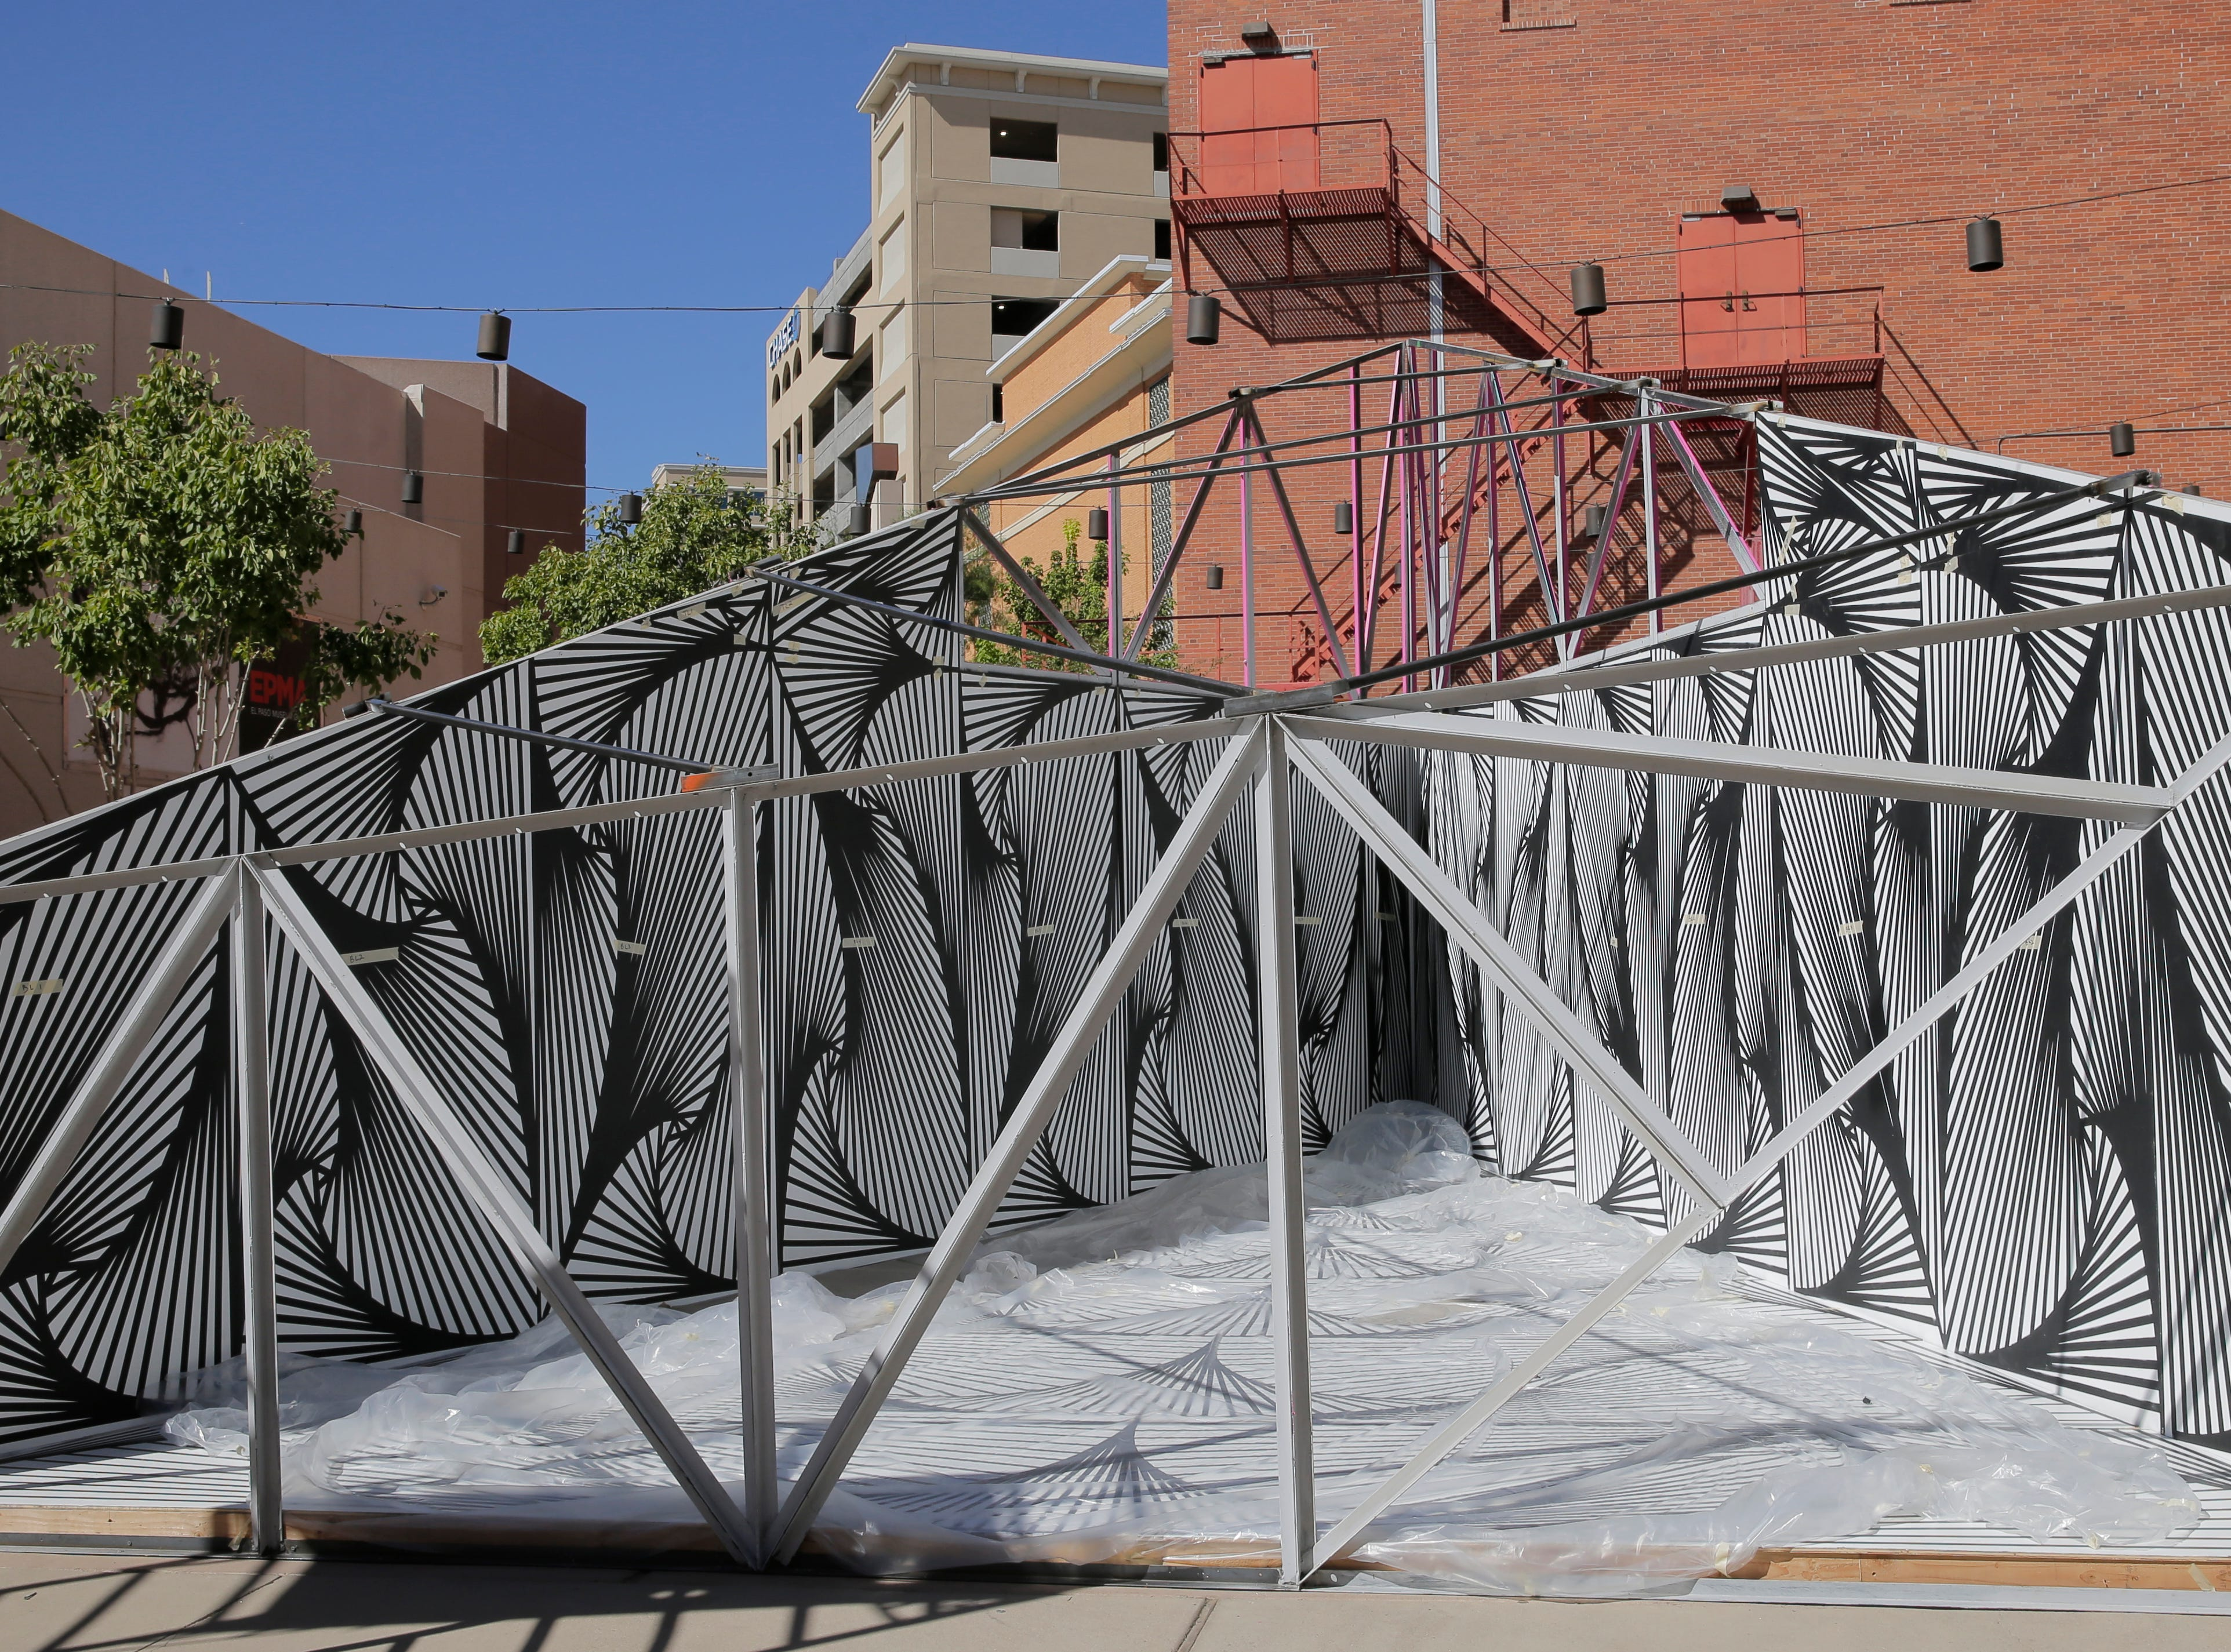 Local artist Laura Turon began installation Wednesday on her Mixed Media/Art Installation, Paradox Pyramid which is being constructed at Arts Festival Plaza for this weekends Chalk the Block event. Turon is being helped by several volunteers, including her husband Adam Gonzalez, Staphany Garnica and others